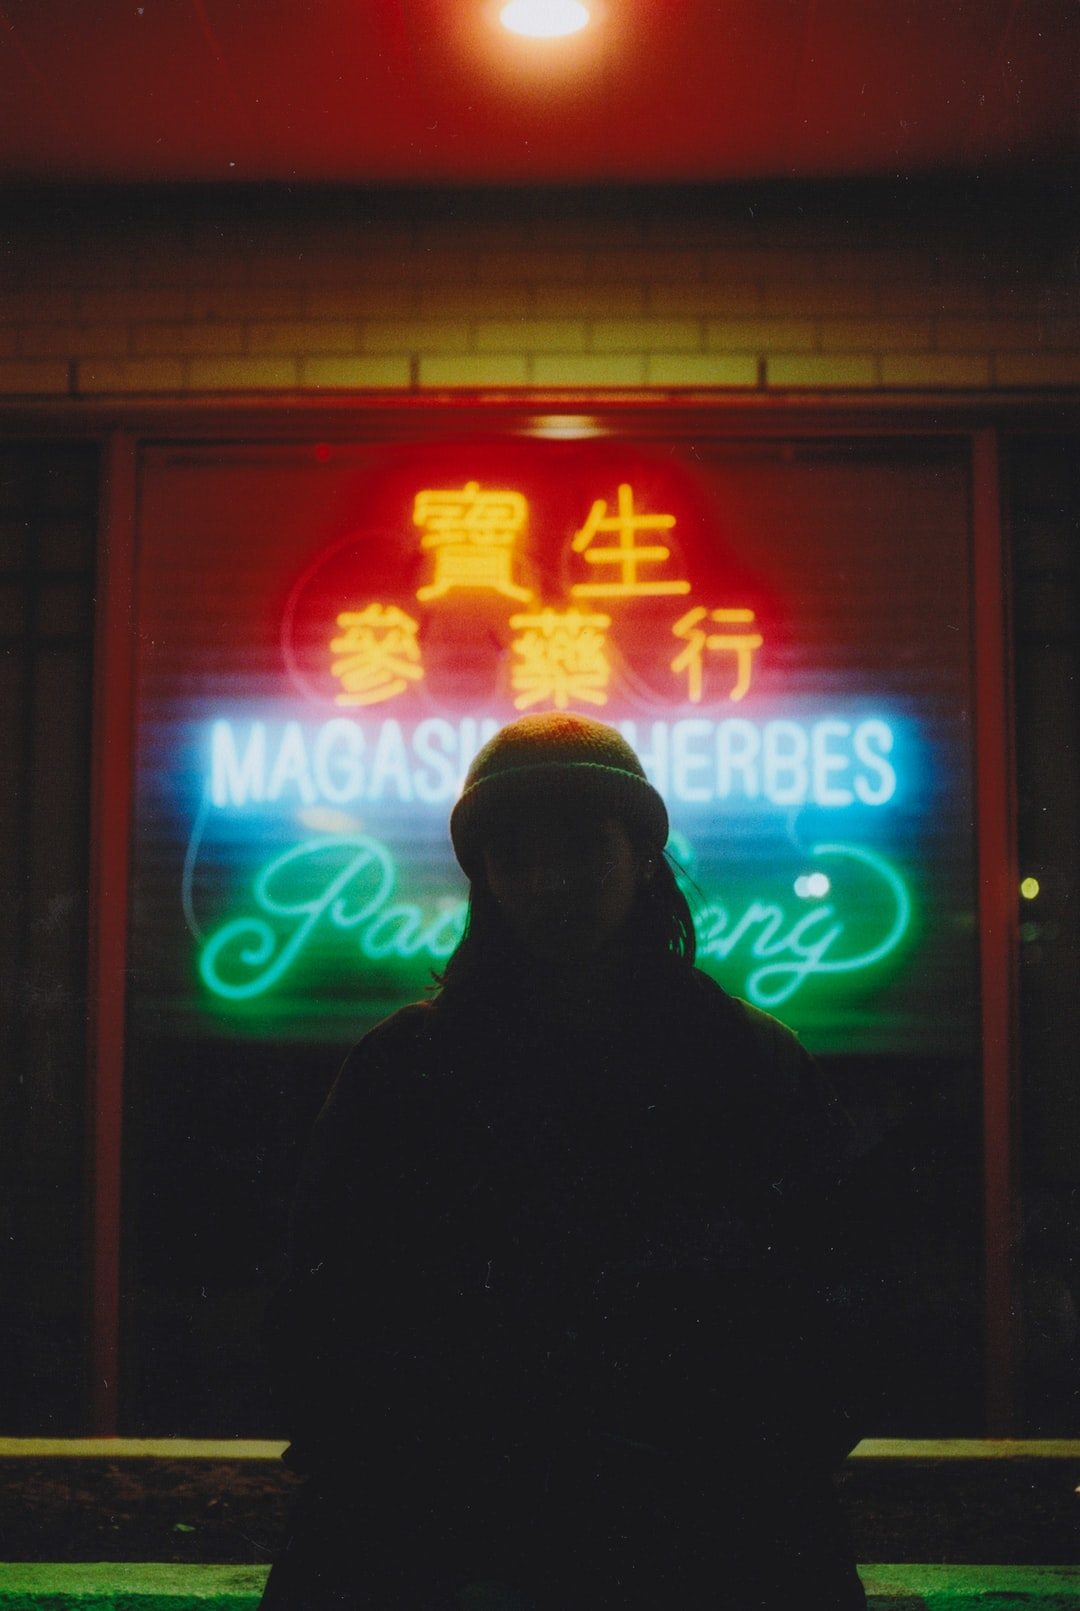 CineStill 800 is one of my favorite films to shoot. During this shoot, we both decided that we would finish both our rolls of 36 exposures. The results were great.